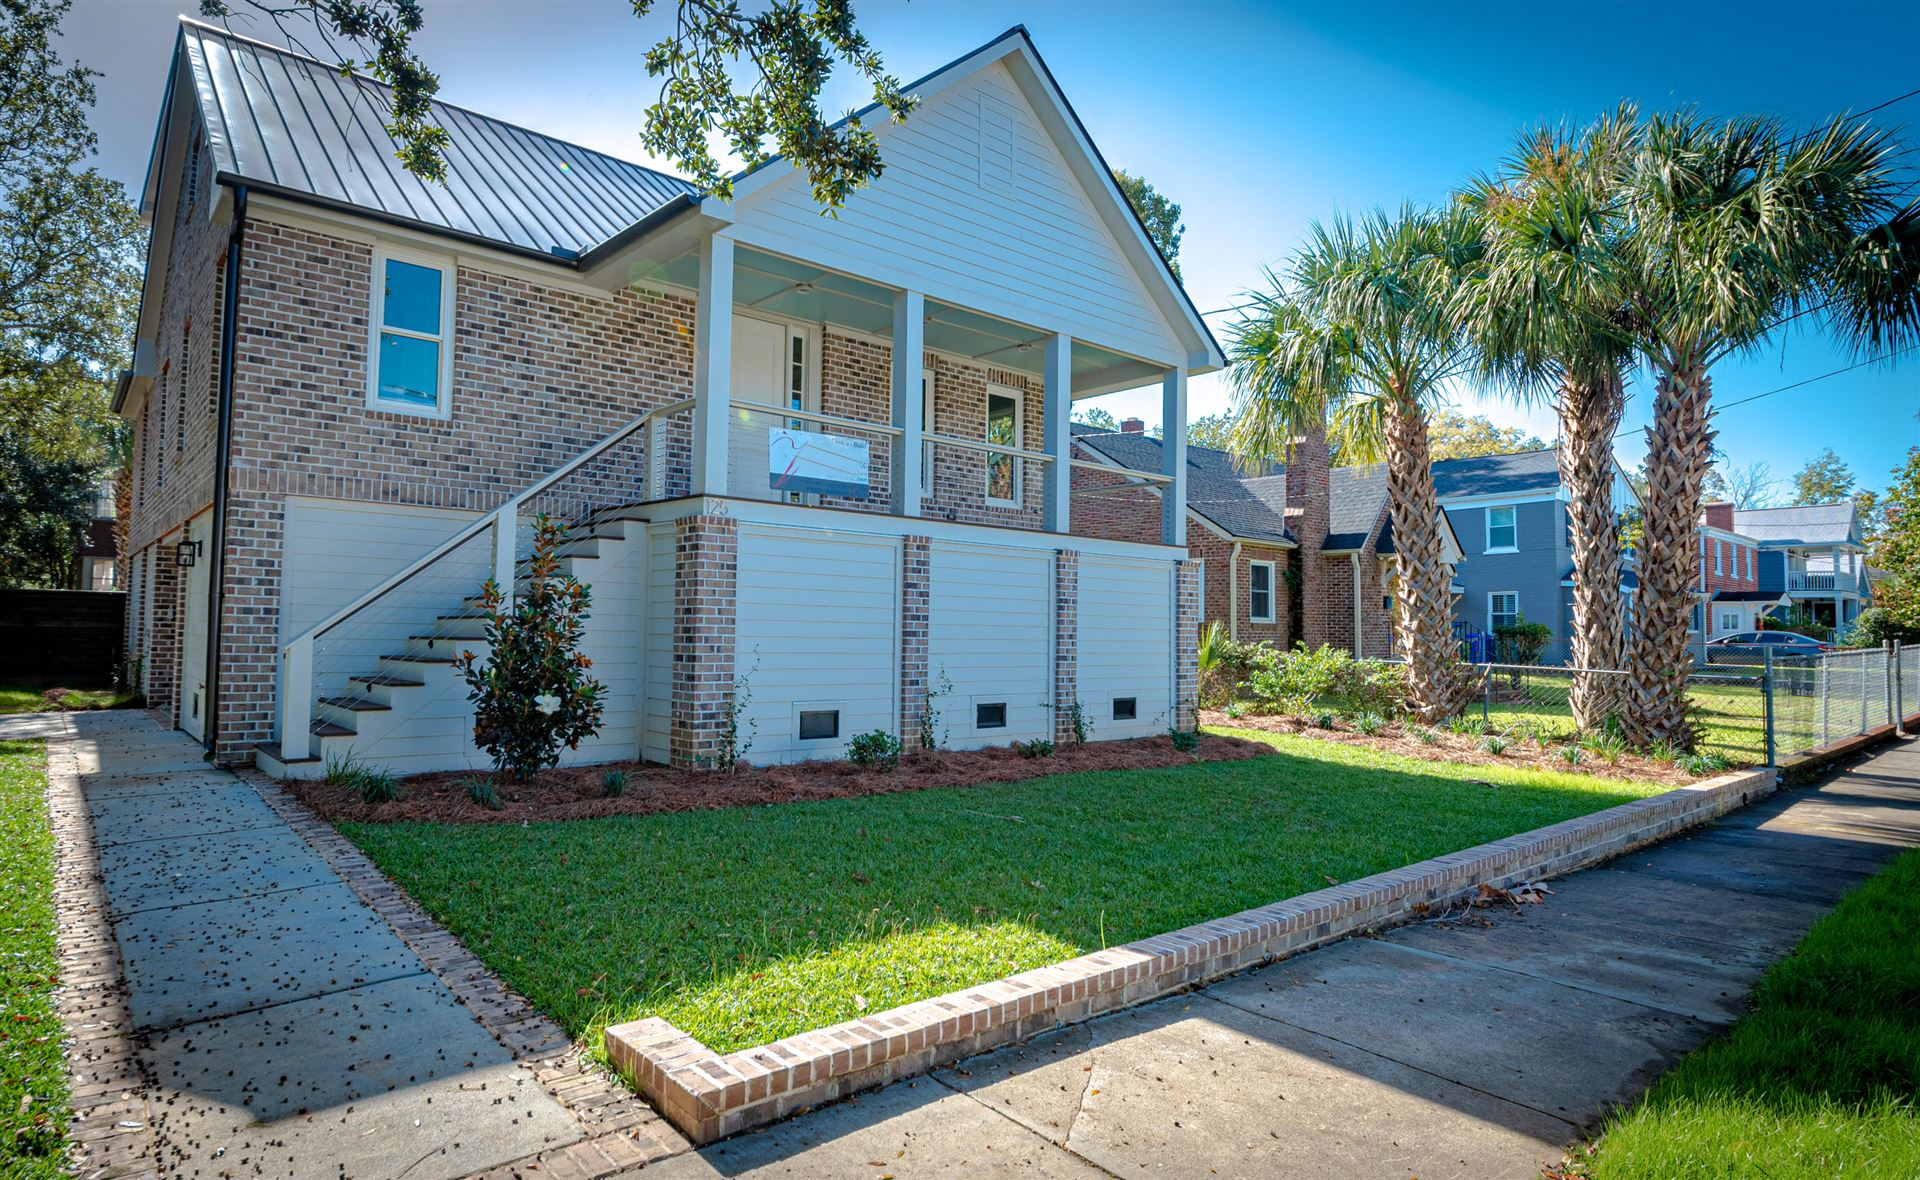 Photo of 125 Gordon Street, Charleston, SC 29403 (MLS # 20032157)